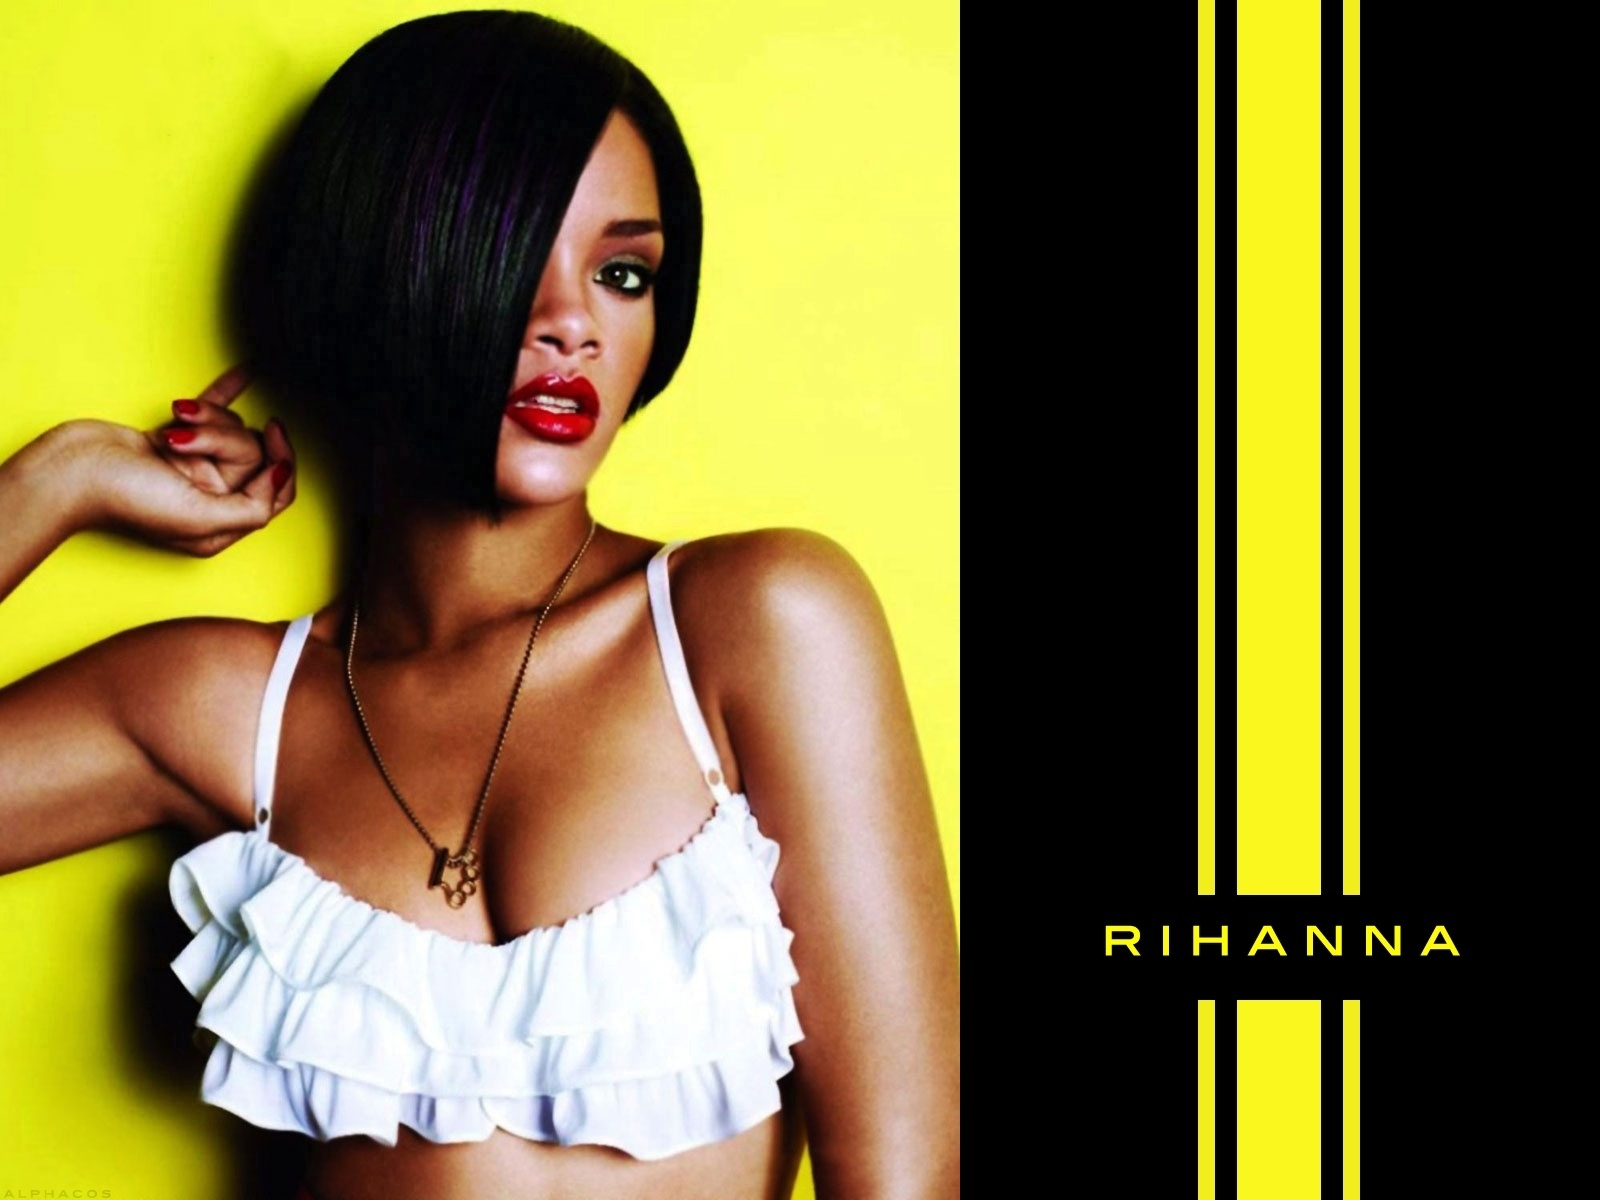 http://images1.fanpop.com/images/photos/1400000/rihanna-rihanna-1453210-1600-1200.jpg